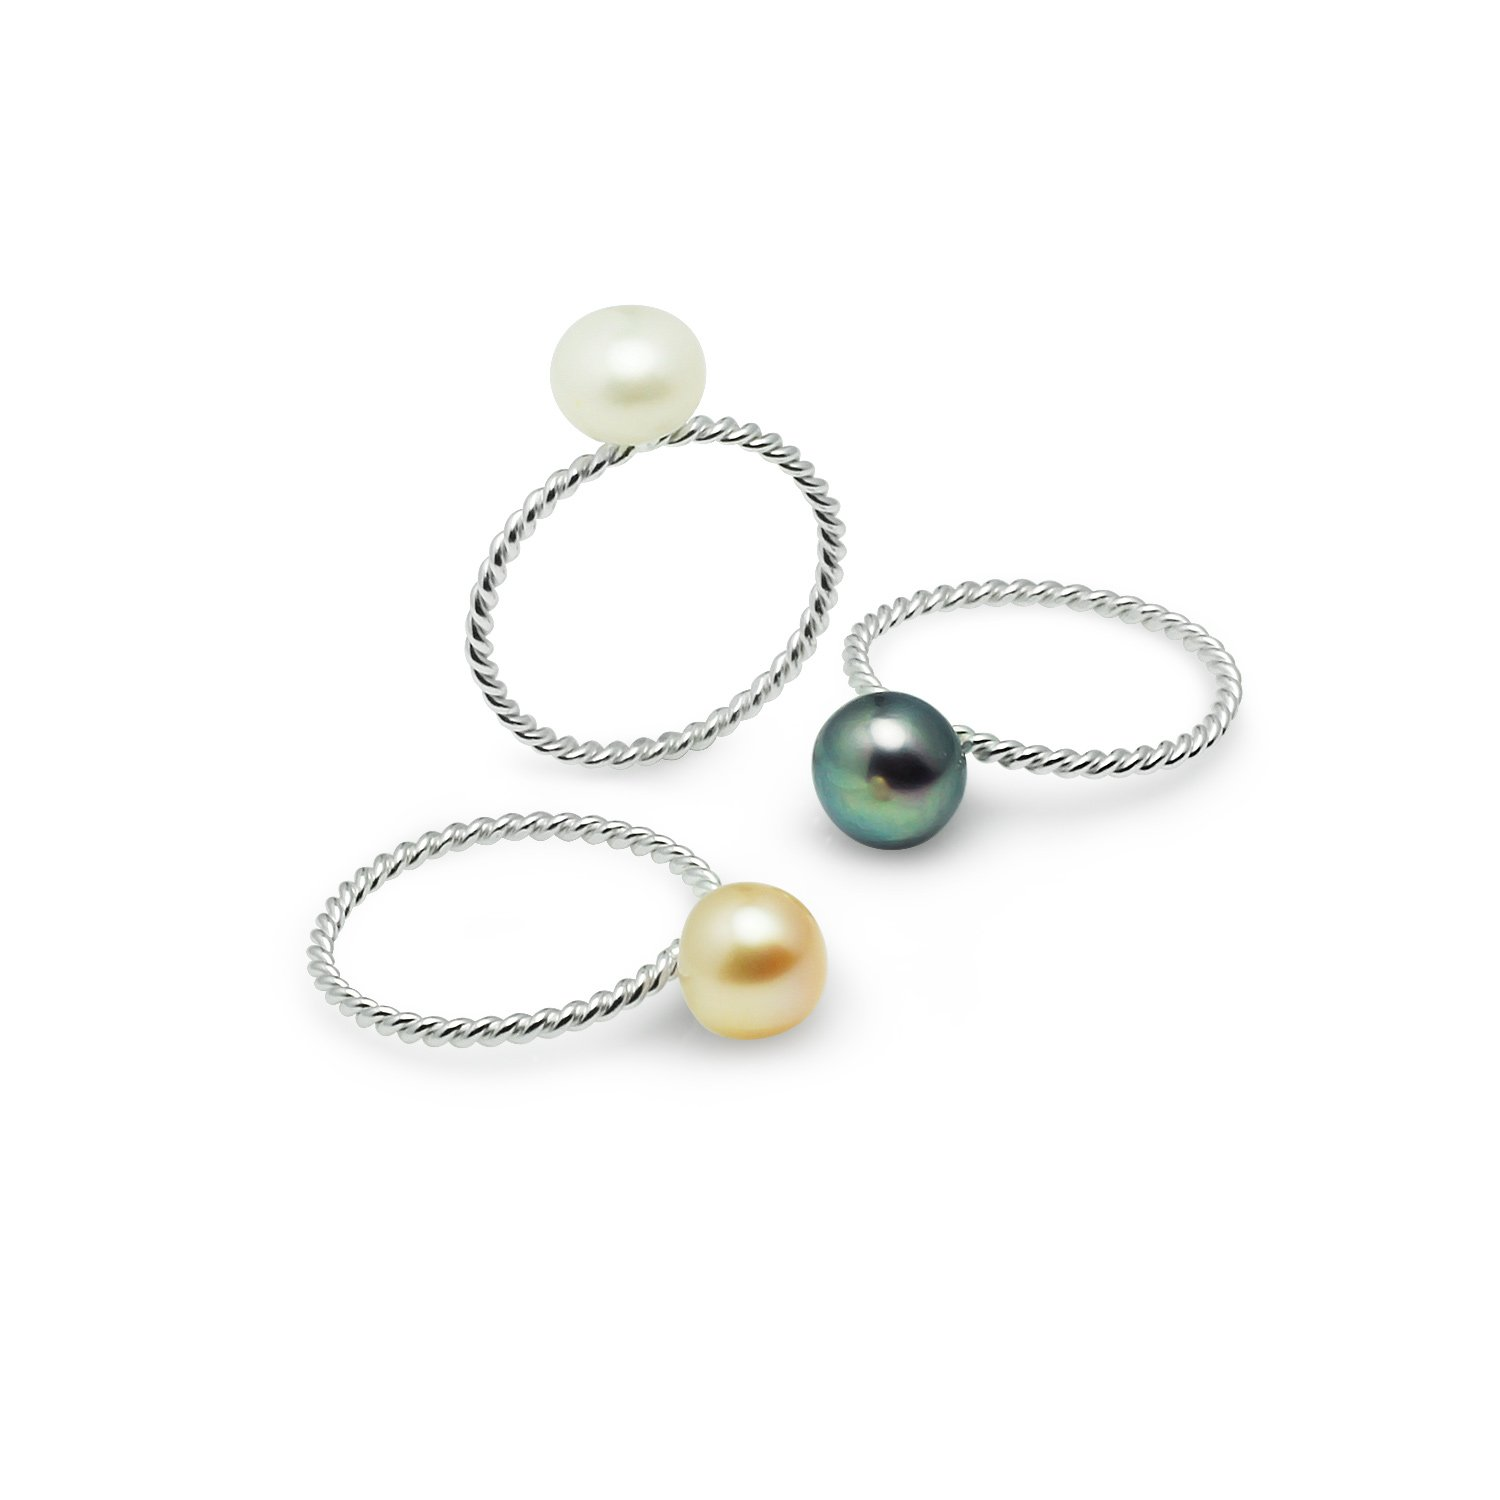 River Island Jewelry - 925 Sterling Silver Twisted Stackable Dyed Cultured Freshwater pearl with 3 Rings - Size 9